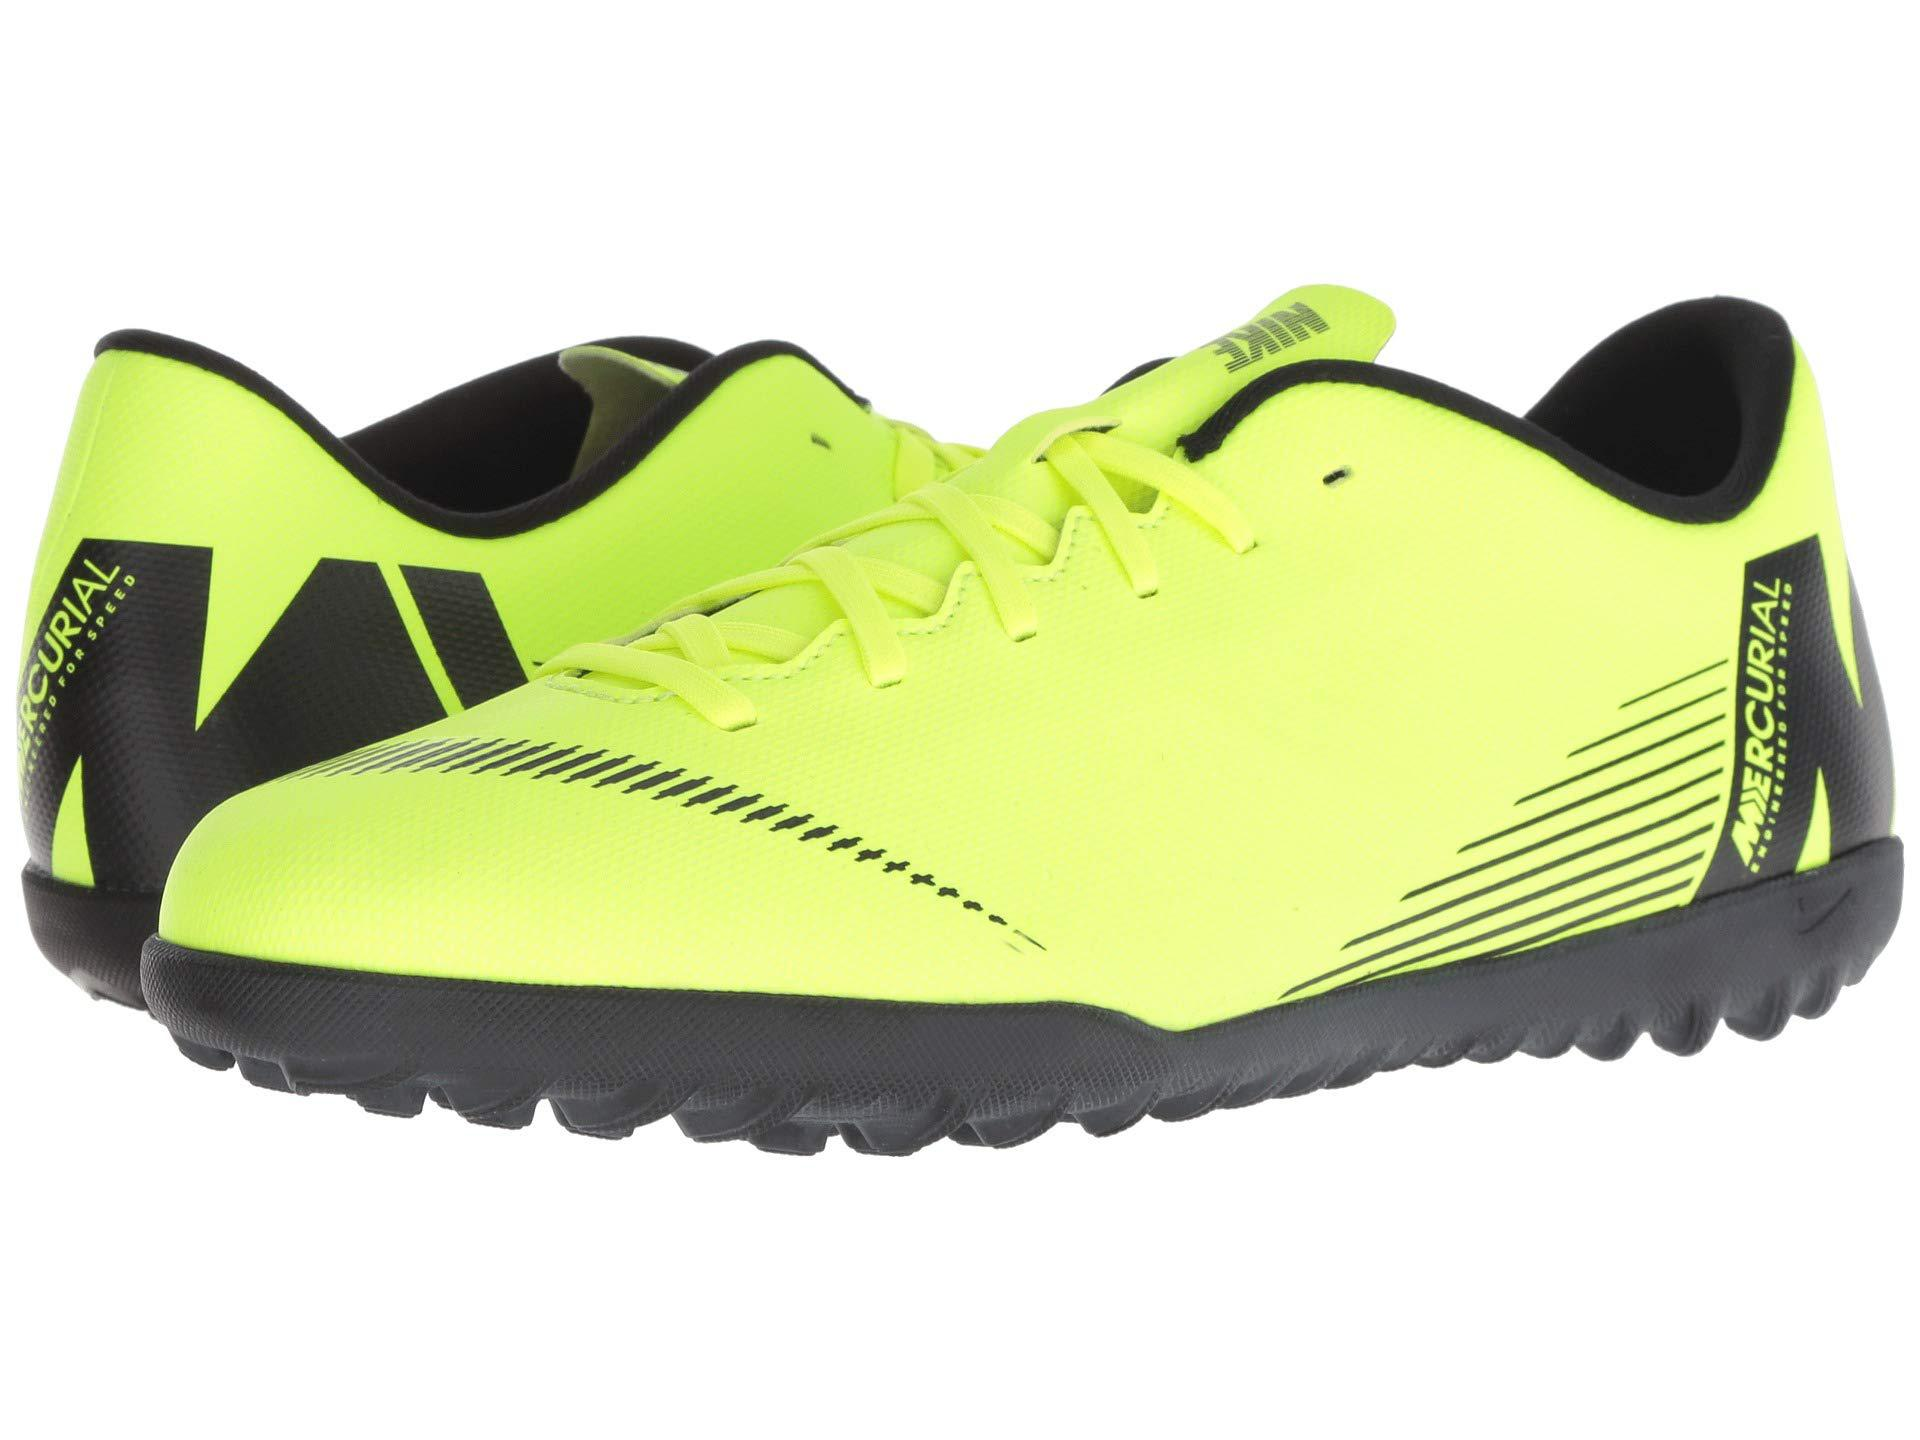 76145a3a8 Lyst - Nike Vaporx 12 Club Tf in Yellow for Men